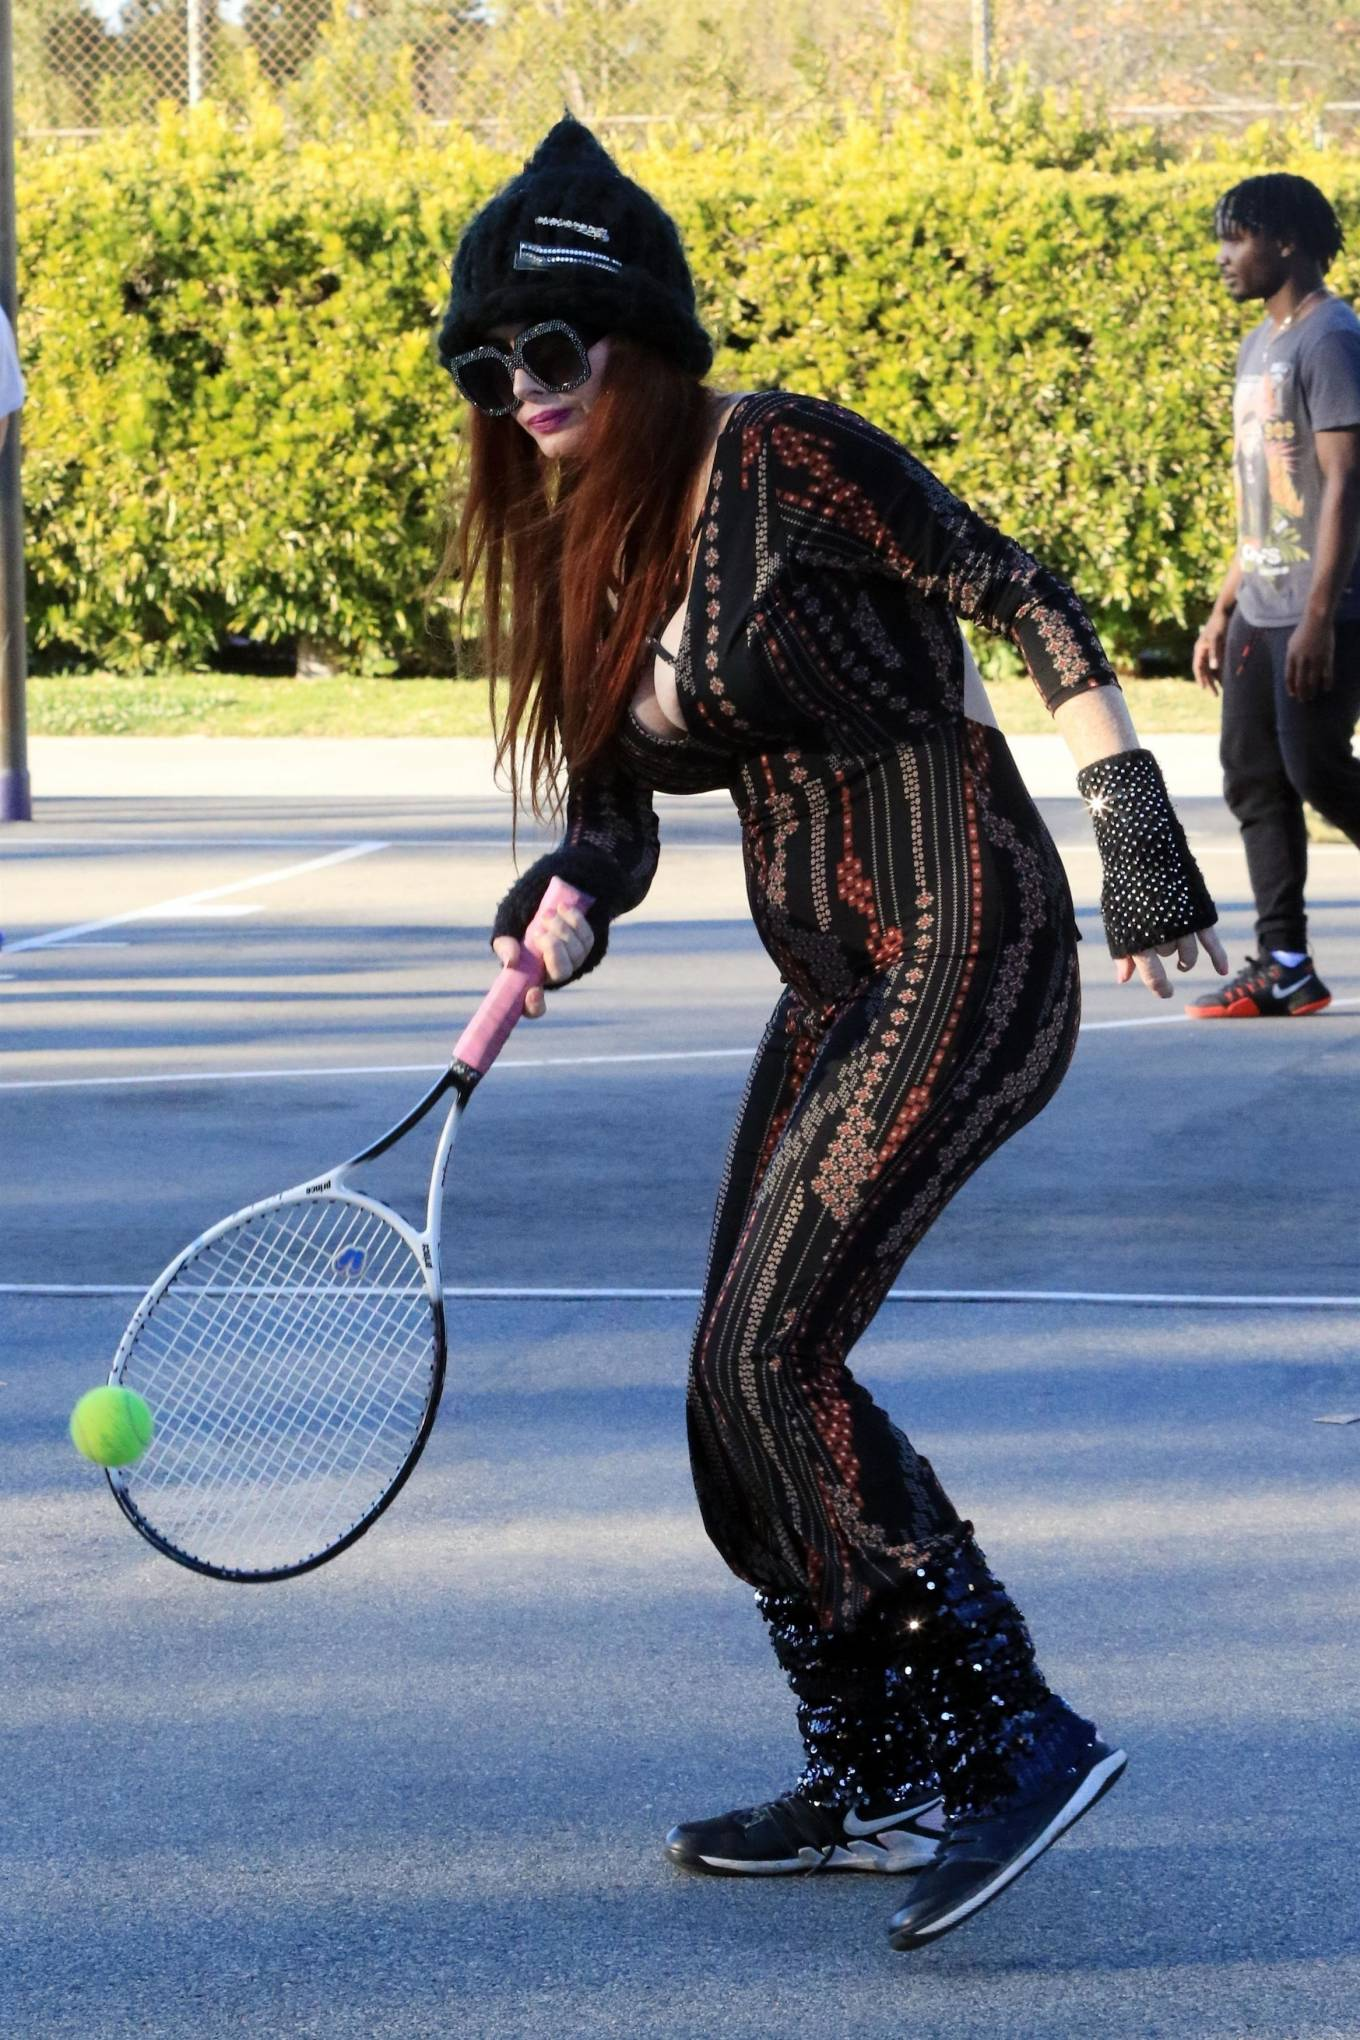 Phoebe Price - Hitting balls at the park on Thursday in Los Angeles